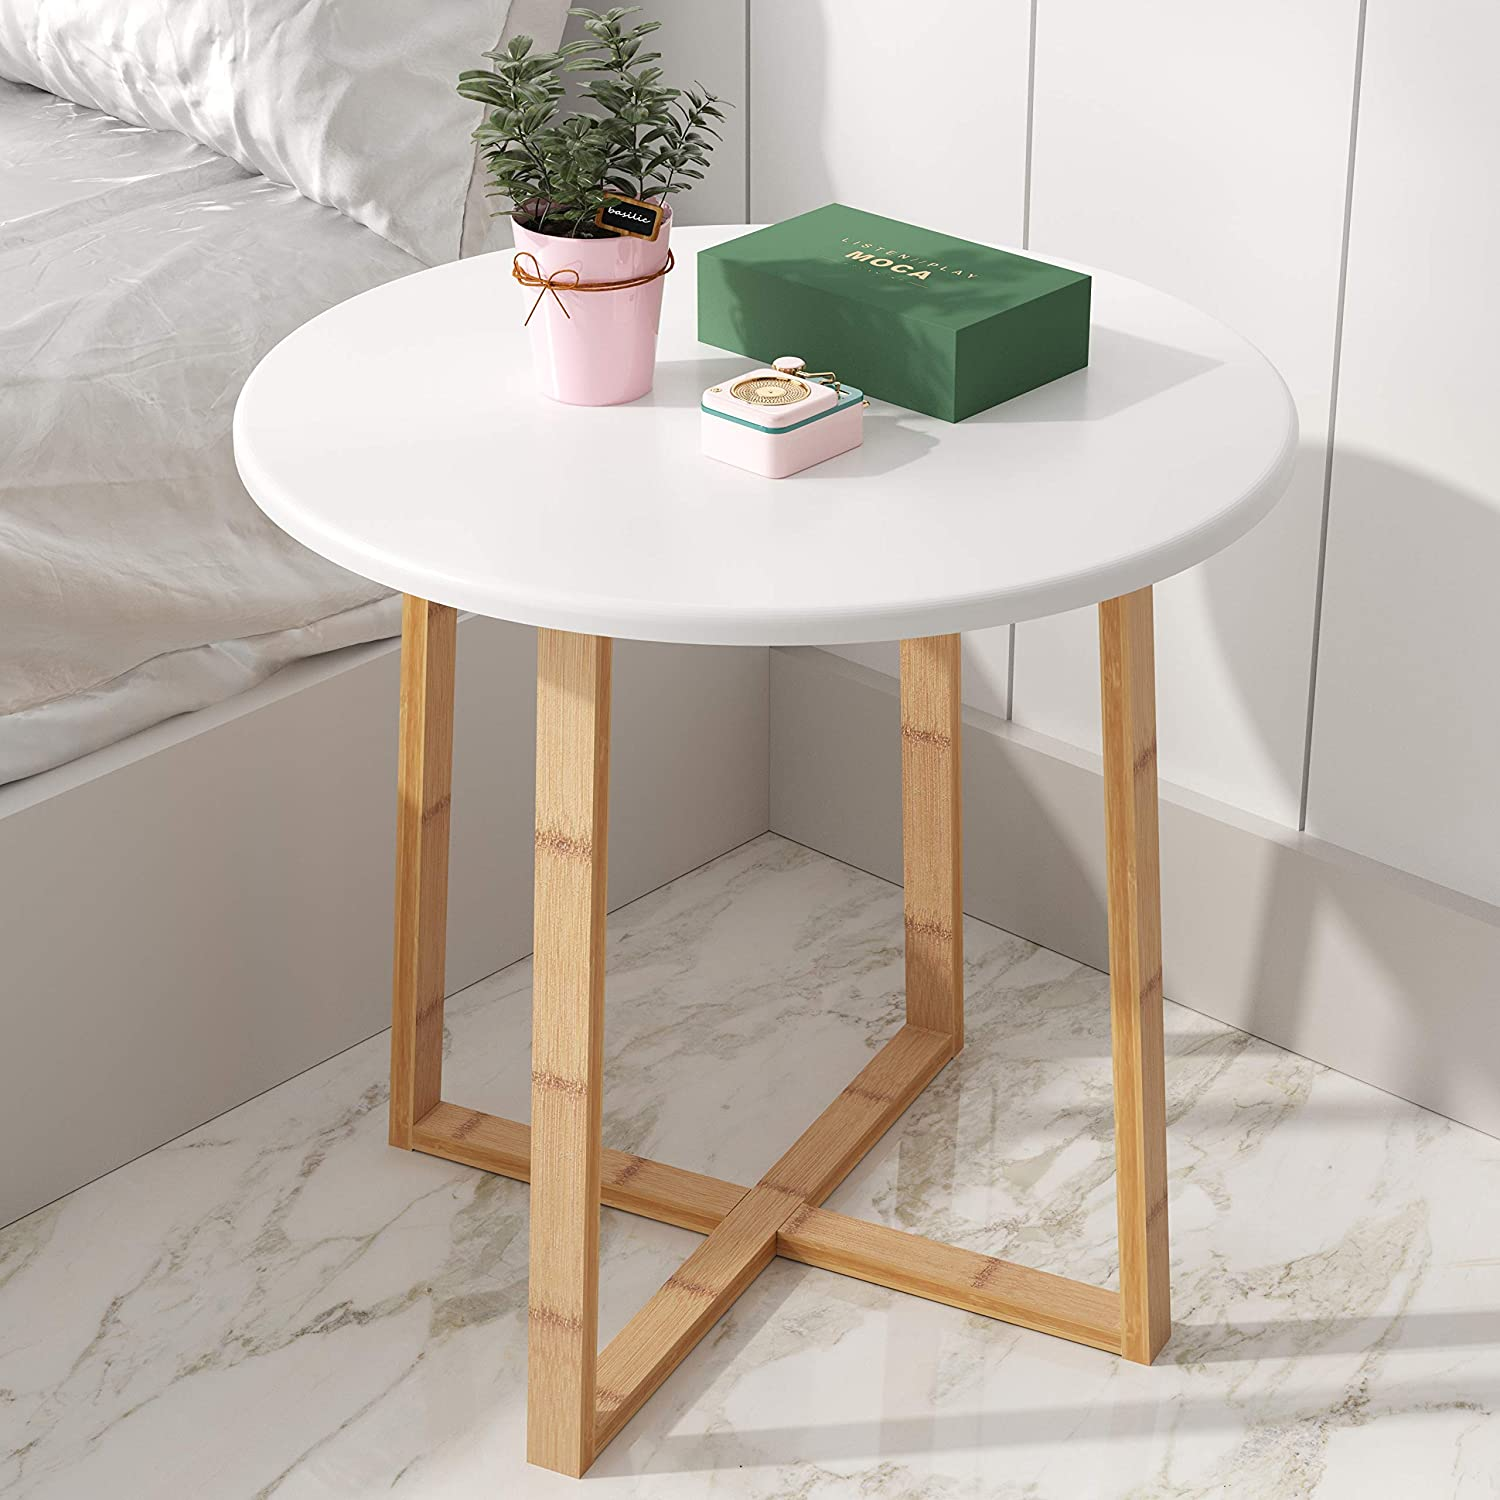 Bameos Side Table Modern Nightstand Round Side End Accent Coffee Table For Living Room Bedroom Balcony Family And Office 19 7inx18 7in Kitchen Dining